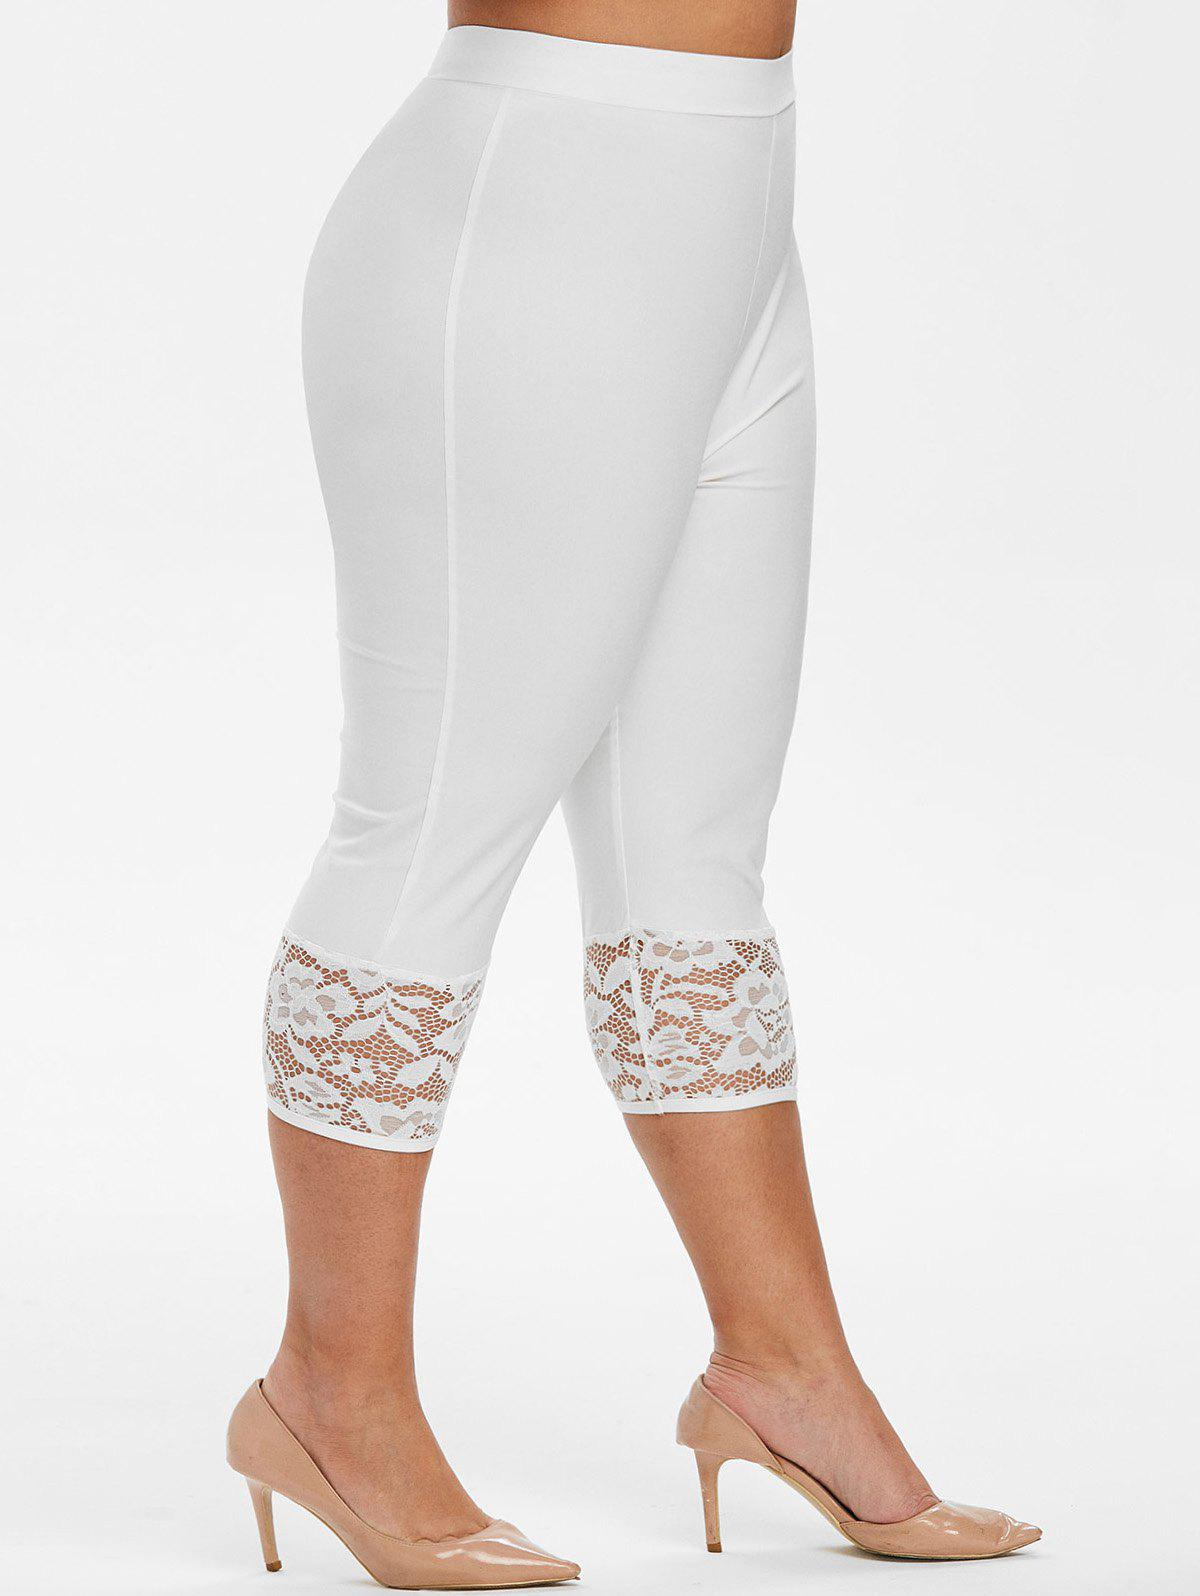 Unique High Waisted Capri Lace Panel Plus Size Pants